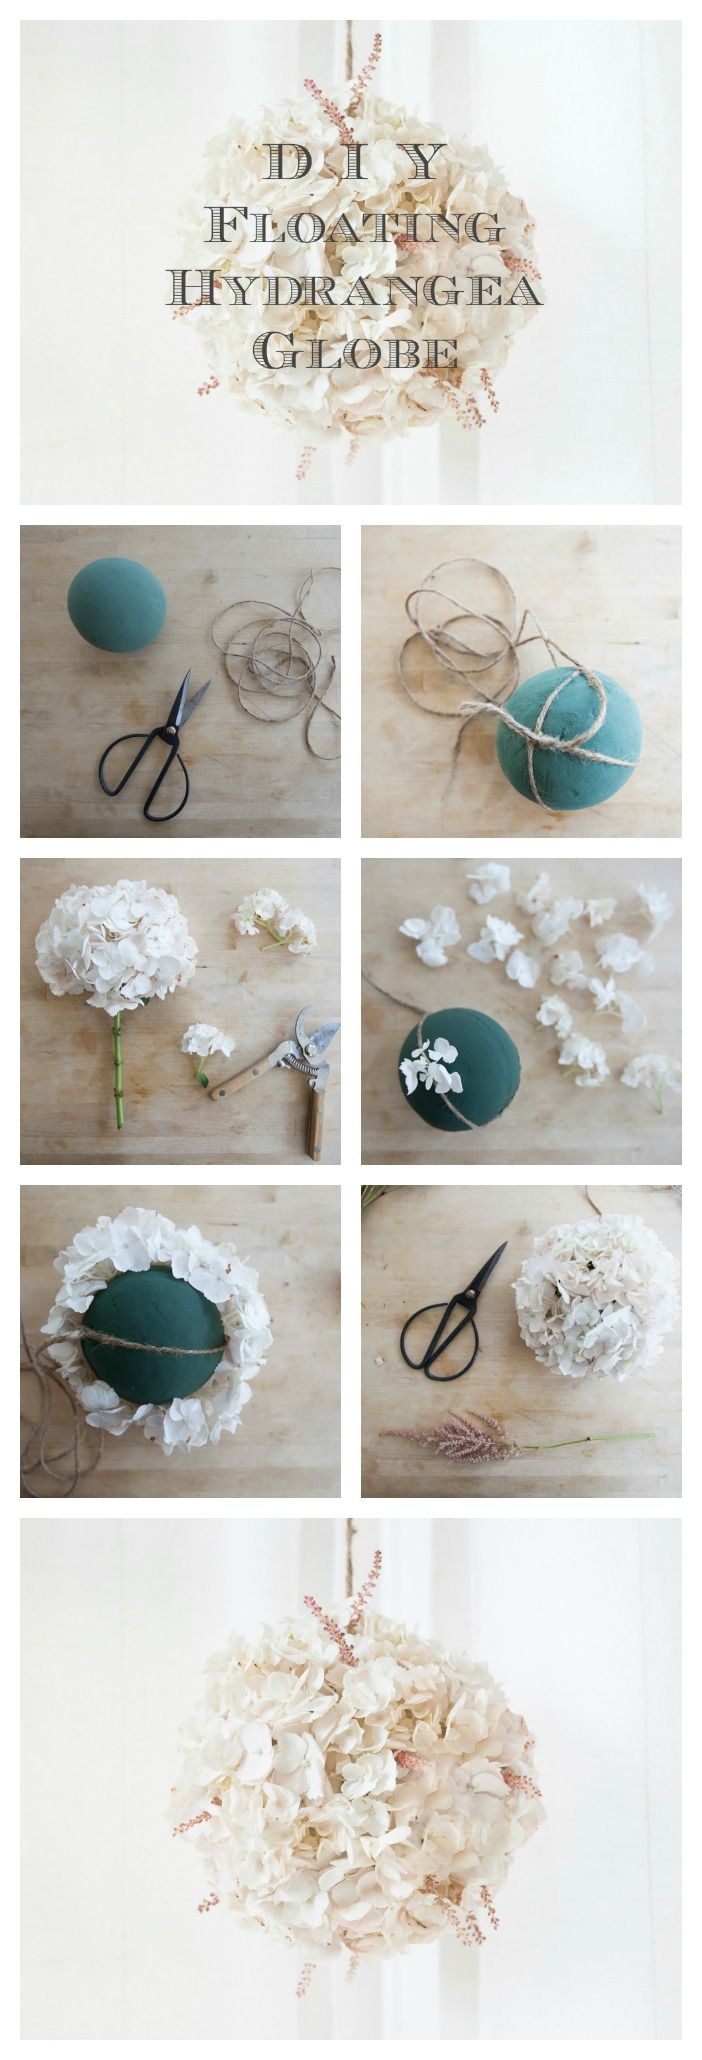 OK seriously just found the best Web site for DIY floral projects!